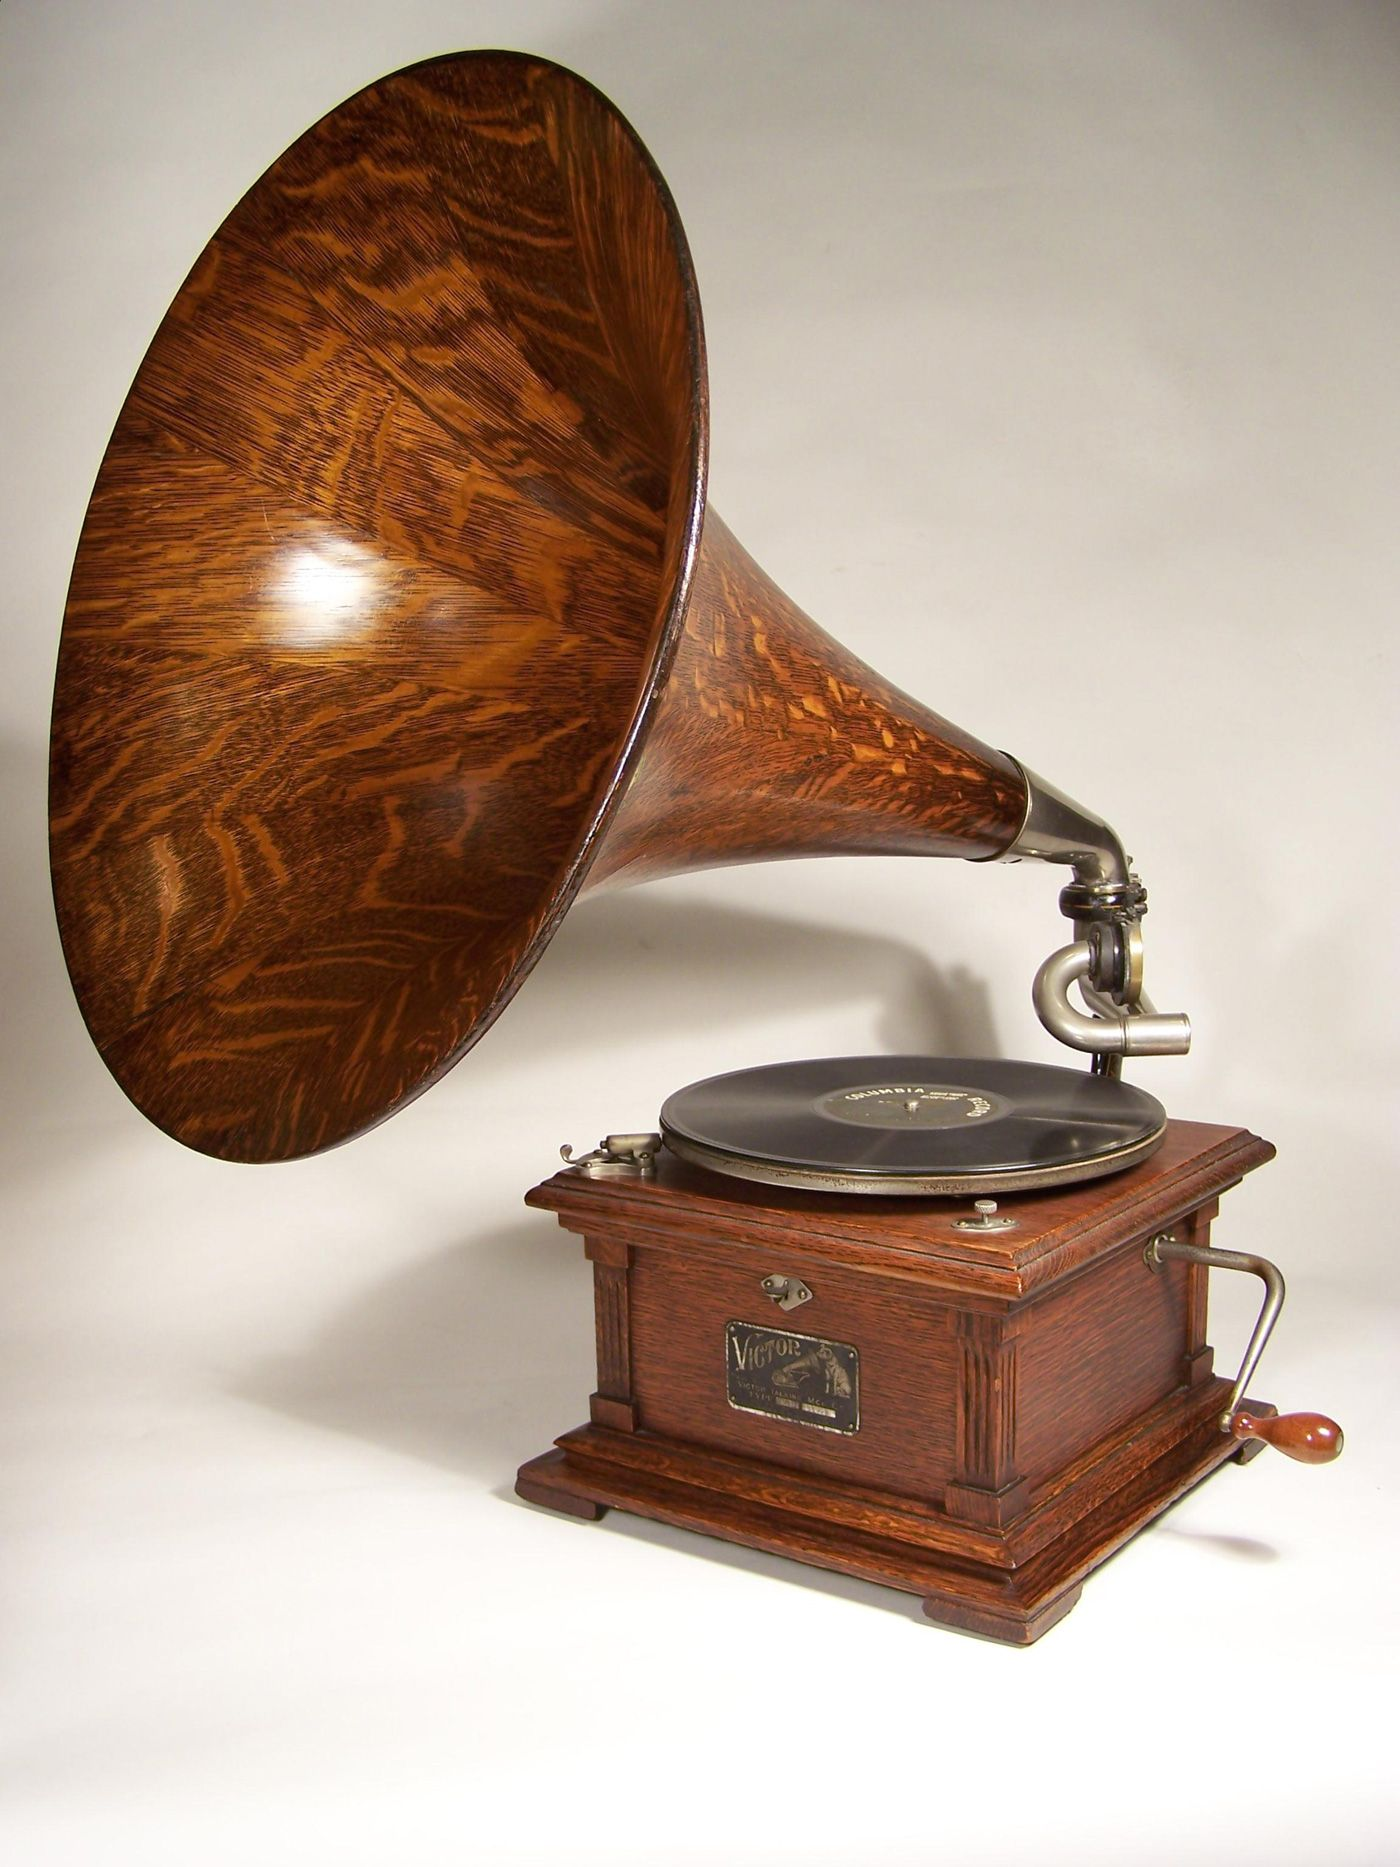 Classic Gramophone Phonograph Sound-machine Grammophon Neu Retro-music-player